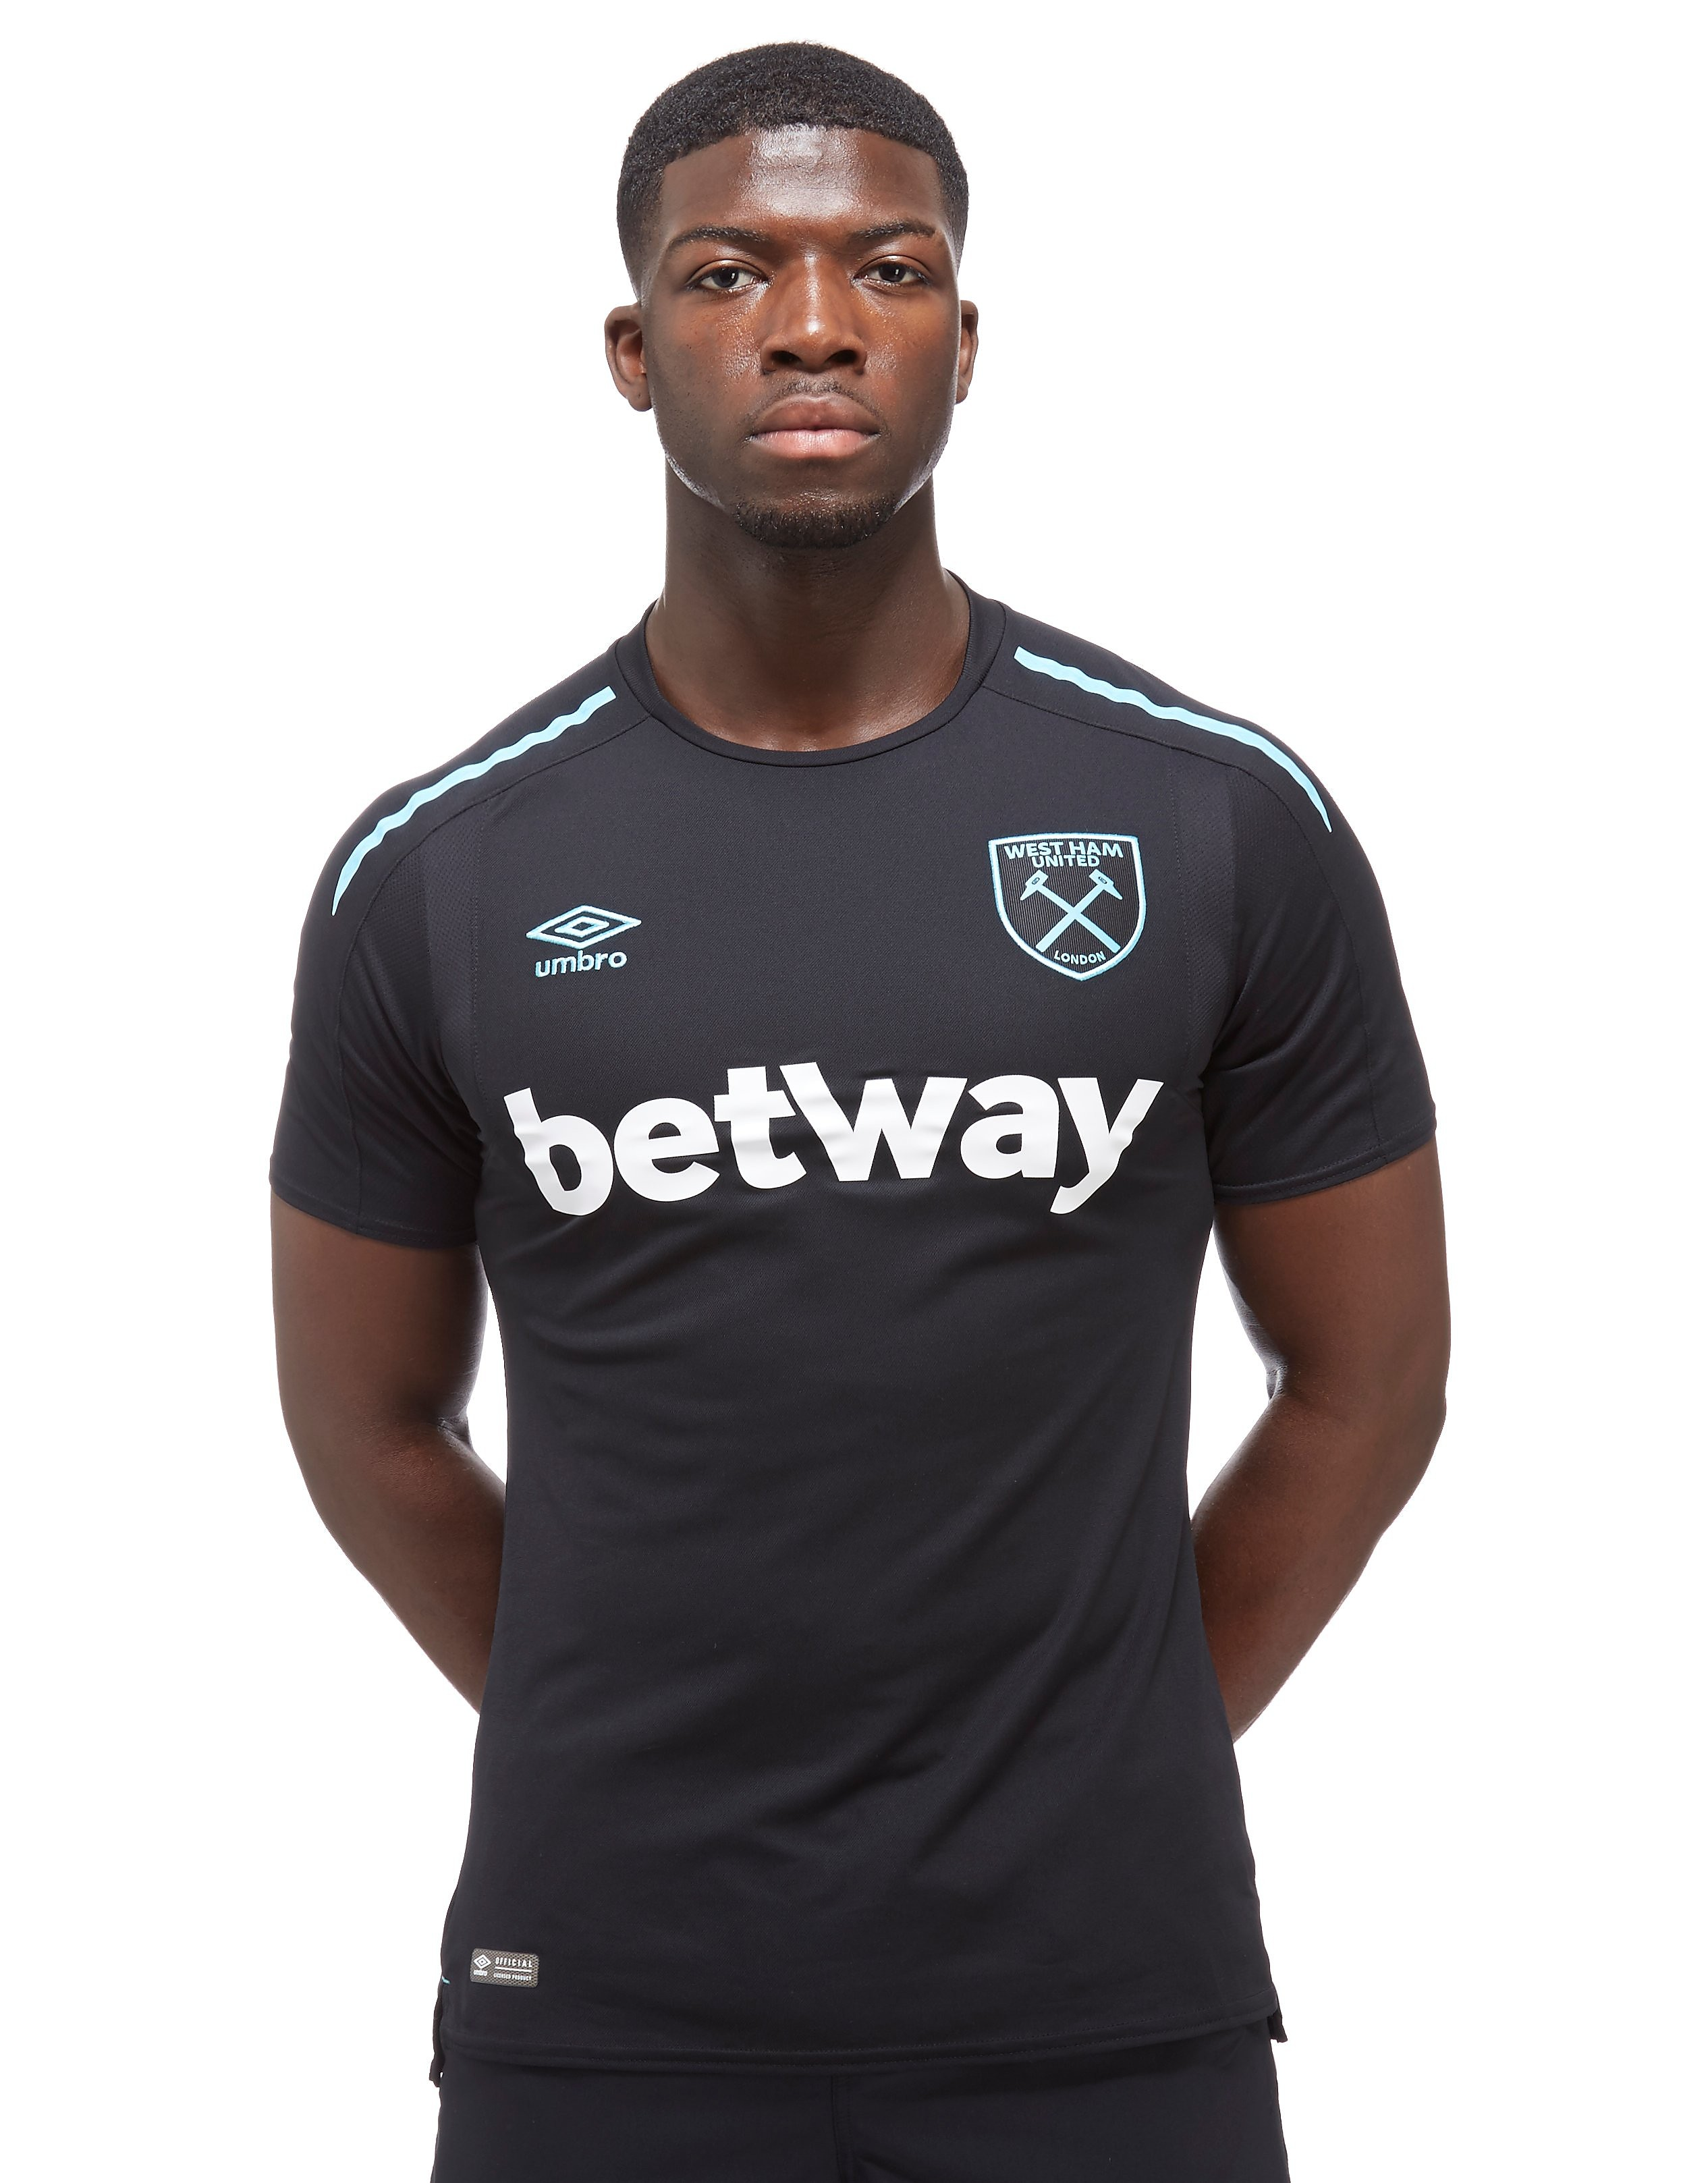 Umbro West Ham United 2017/18 Away Shirt PRE ORDER